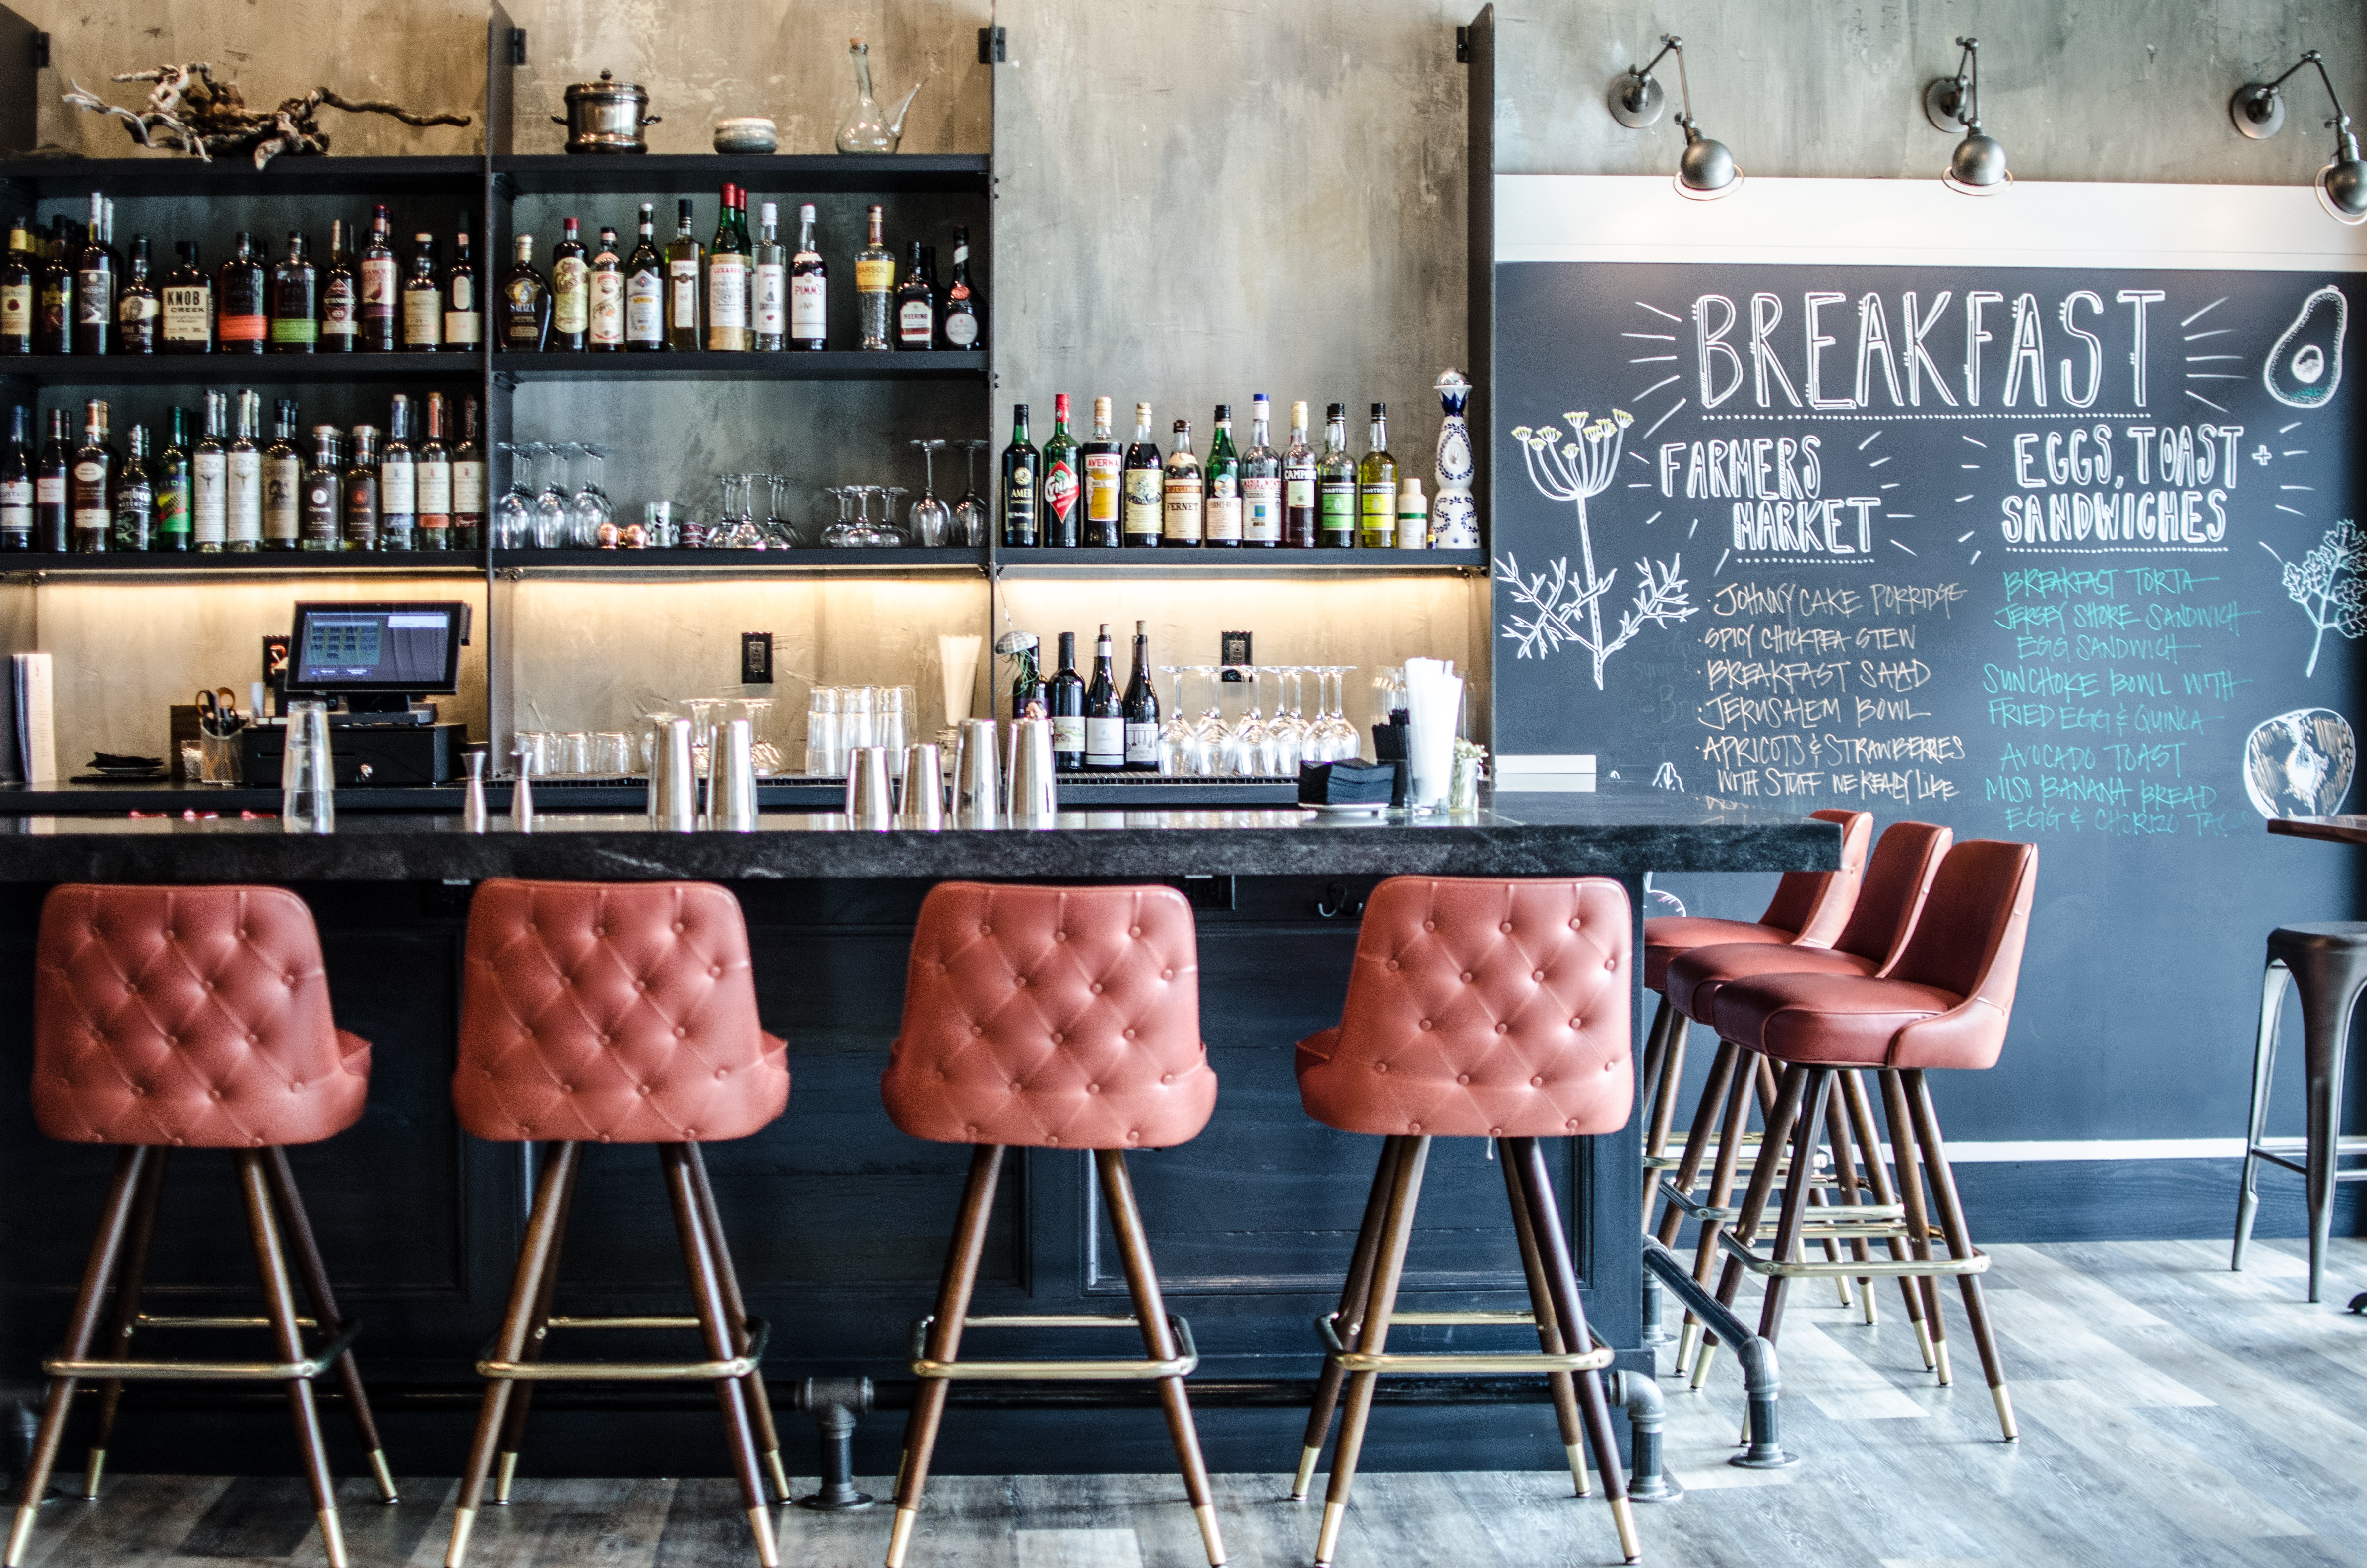 Pale red bar stools line an L-shaped bar, with a chalkboard wall displaying menu items off to the right